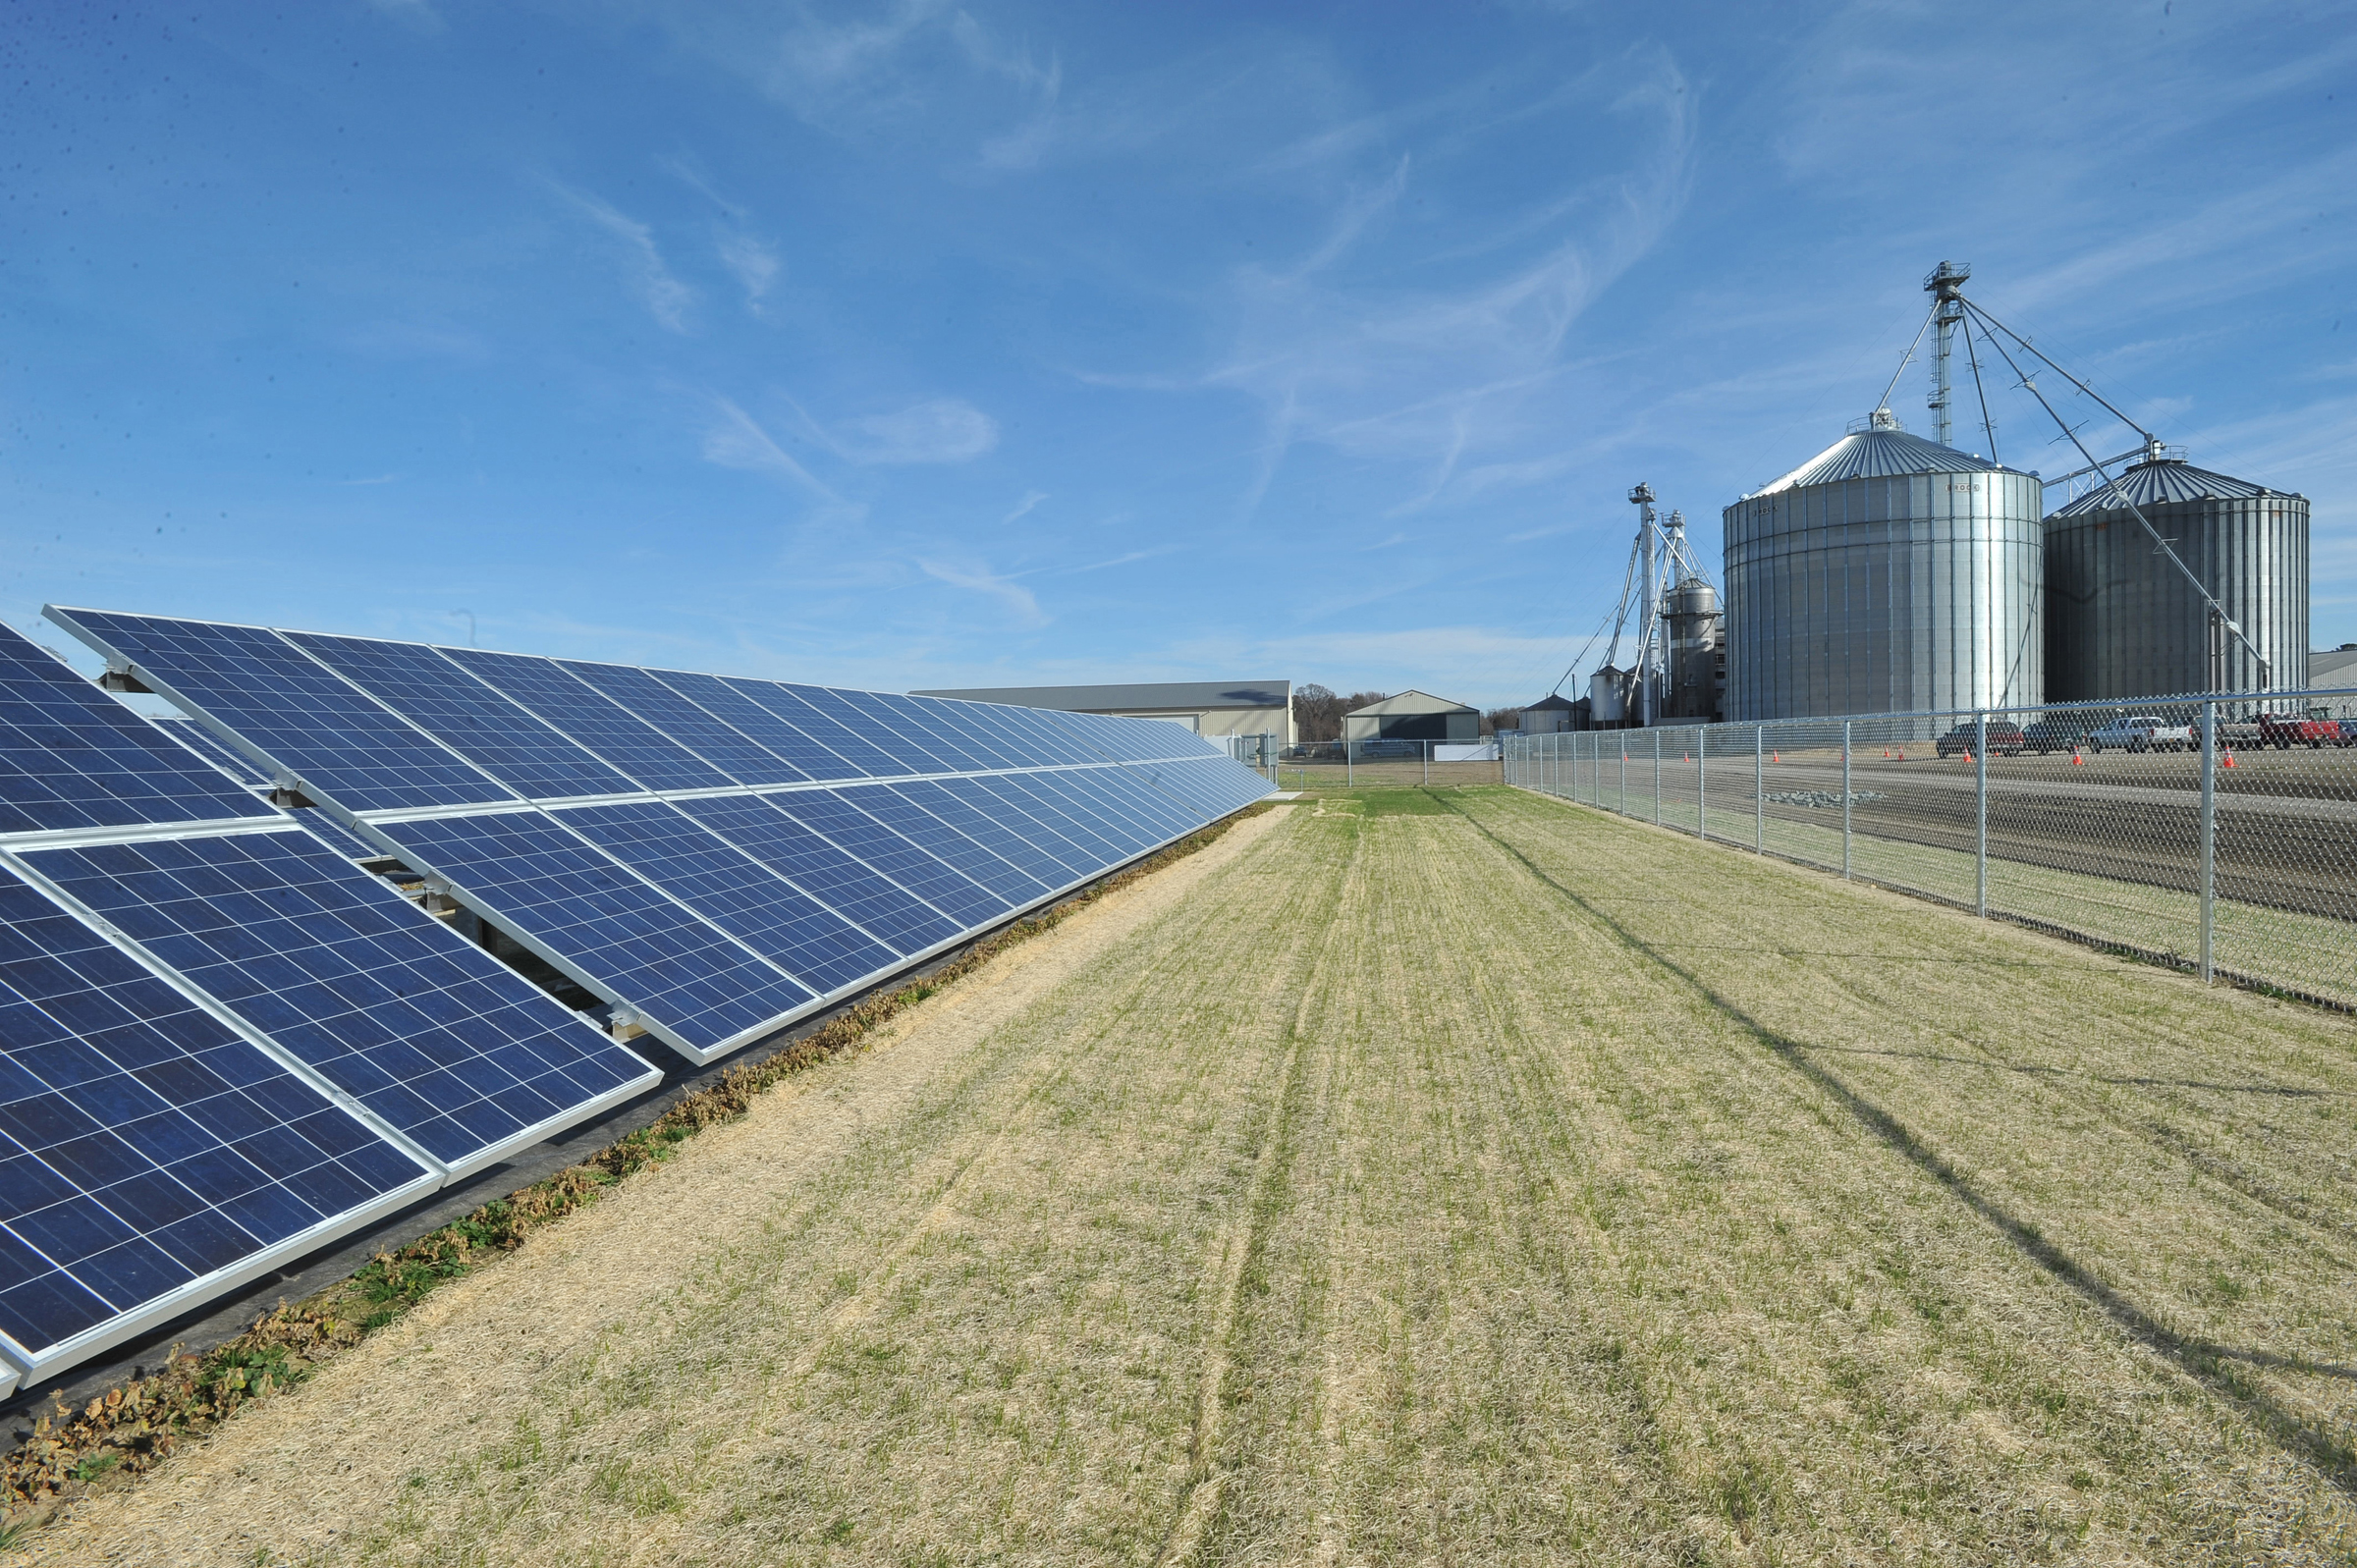 Dupont Celebrates Sustainable Agriculture At Harborview Farms